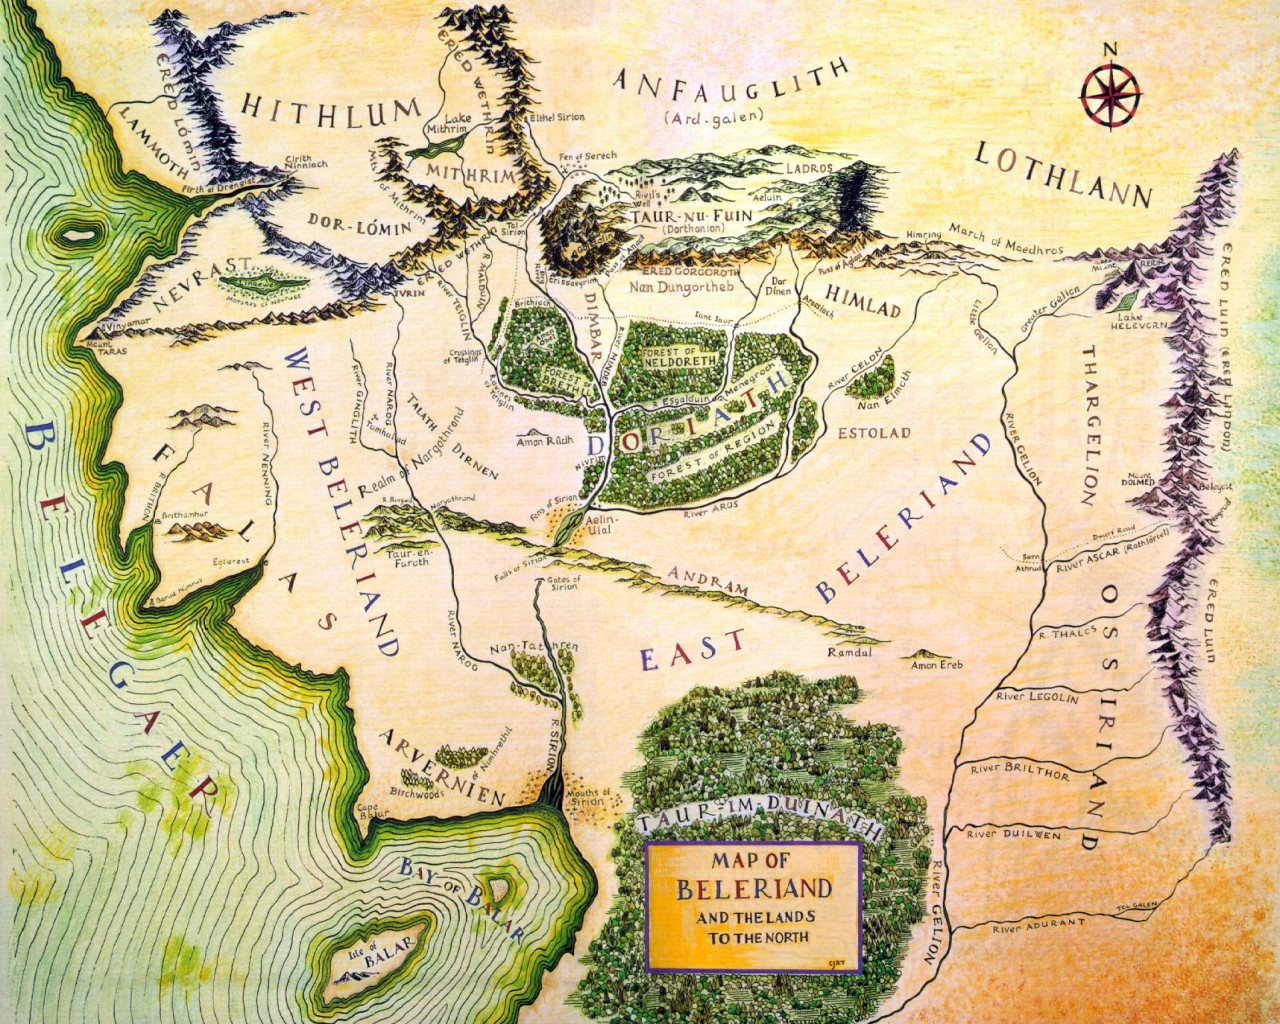 Kingdoms Of Middle Earth Map on lord of the rings map, the hobbit map, kingdoms of middle earth buildings,